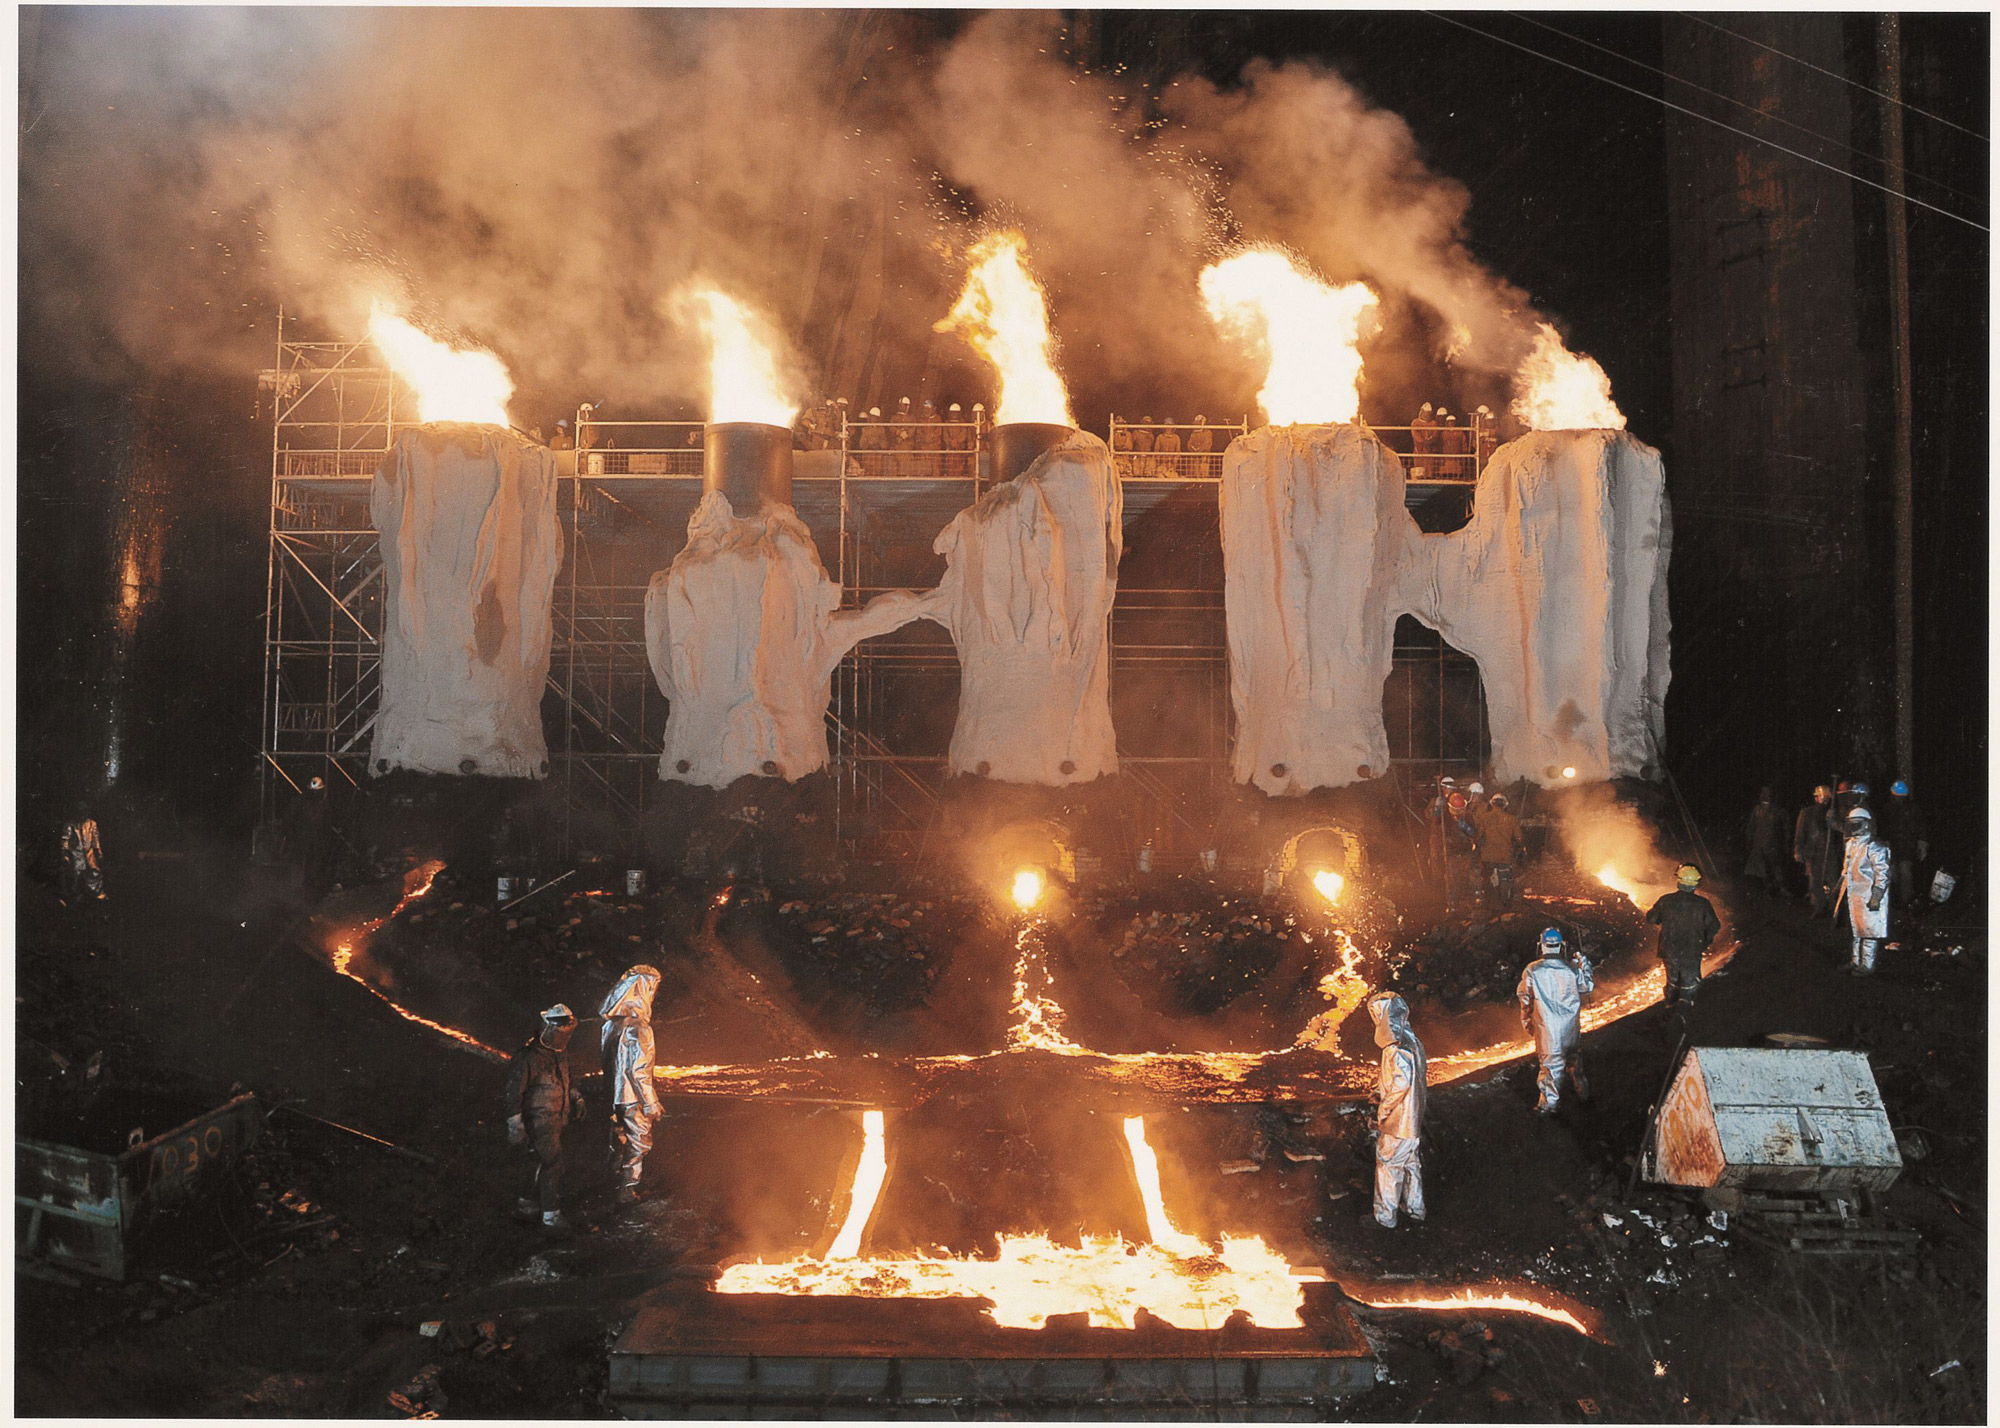 Production Coordinator, Matthew Barney's River of Fundament